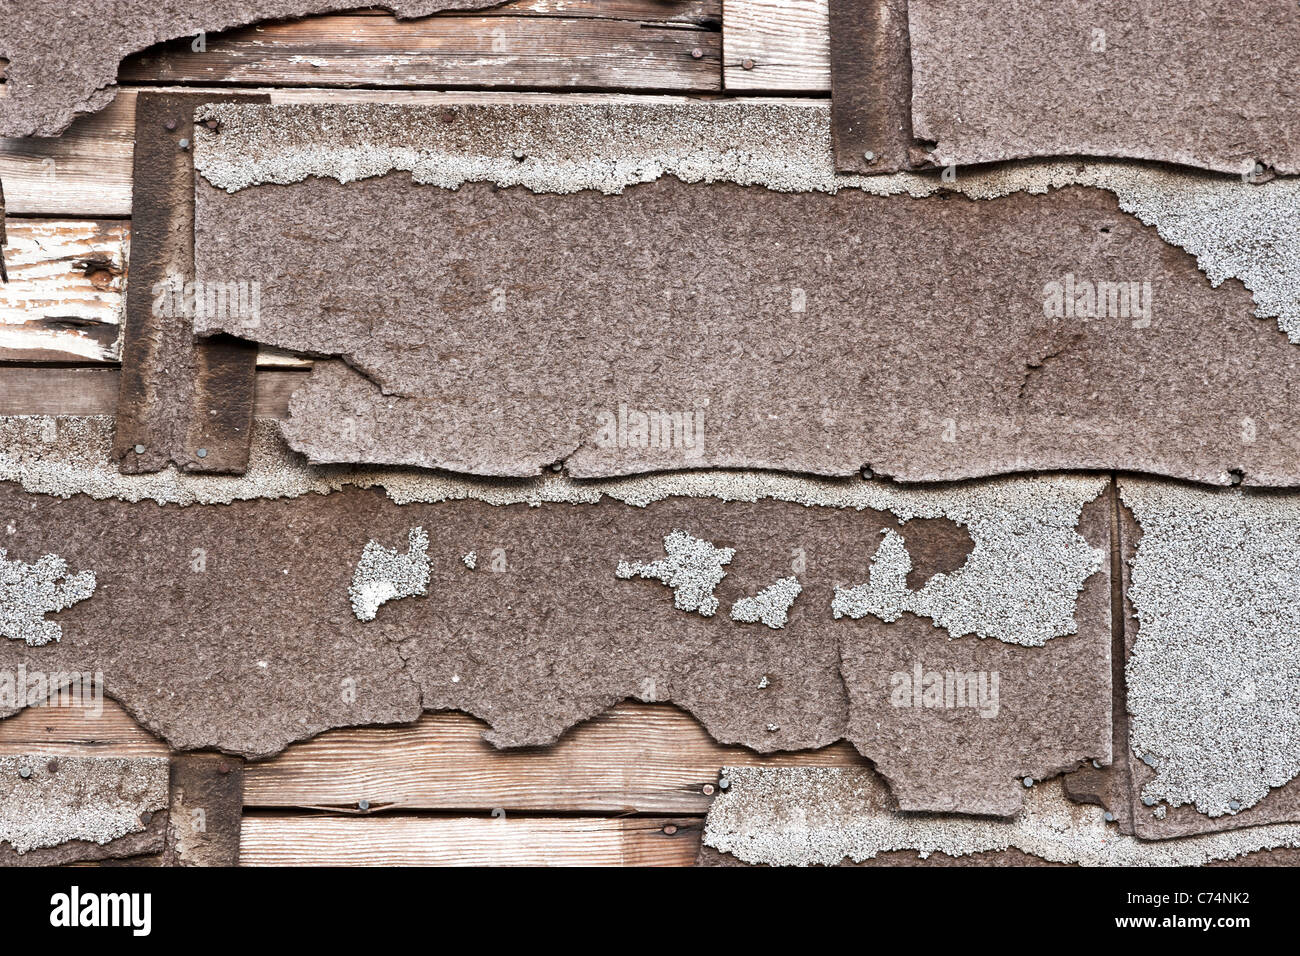 Asbestos composition asphalt shingles deteriorating - Stock Image